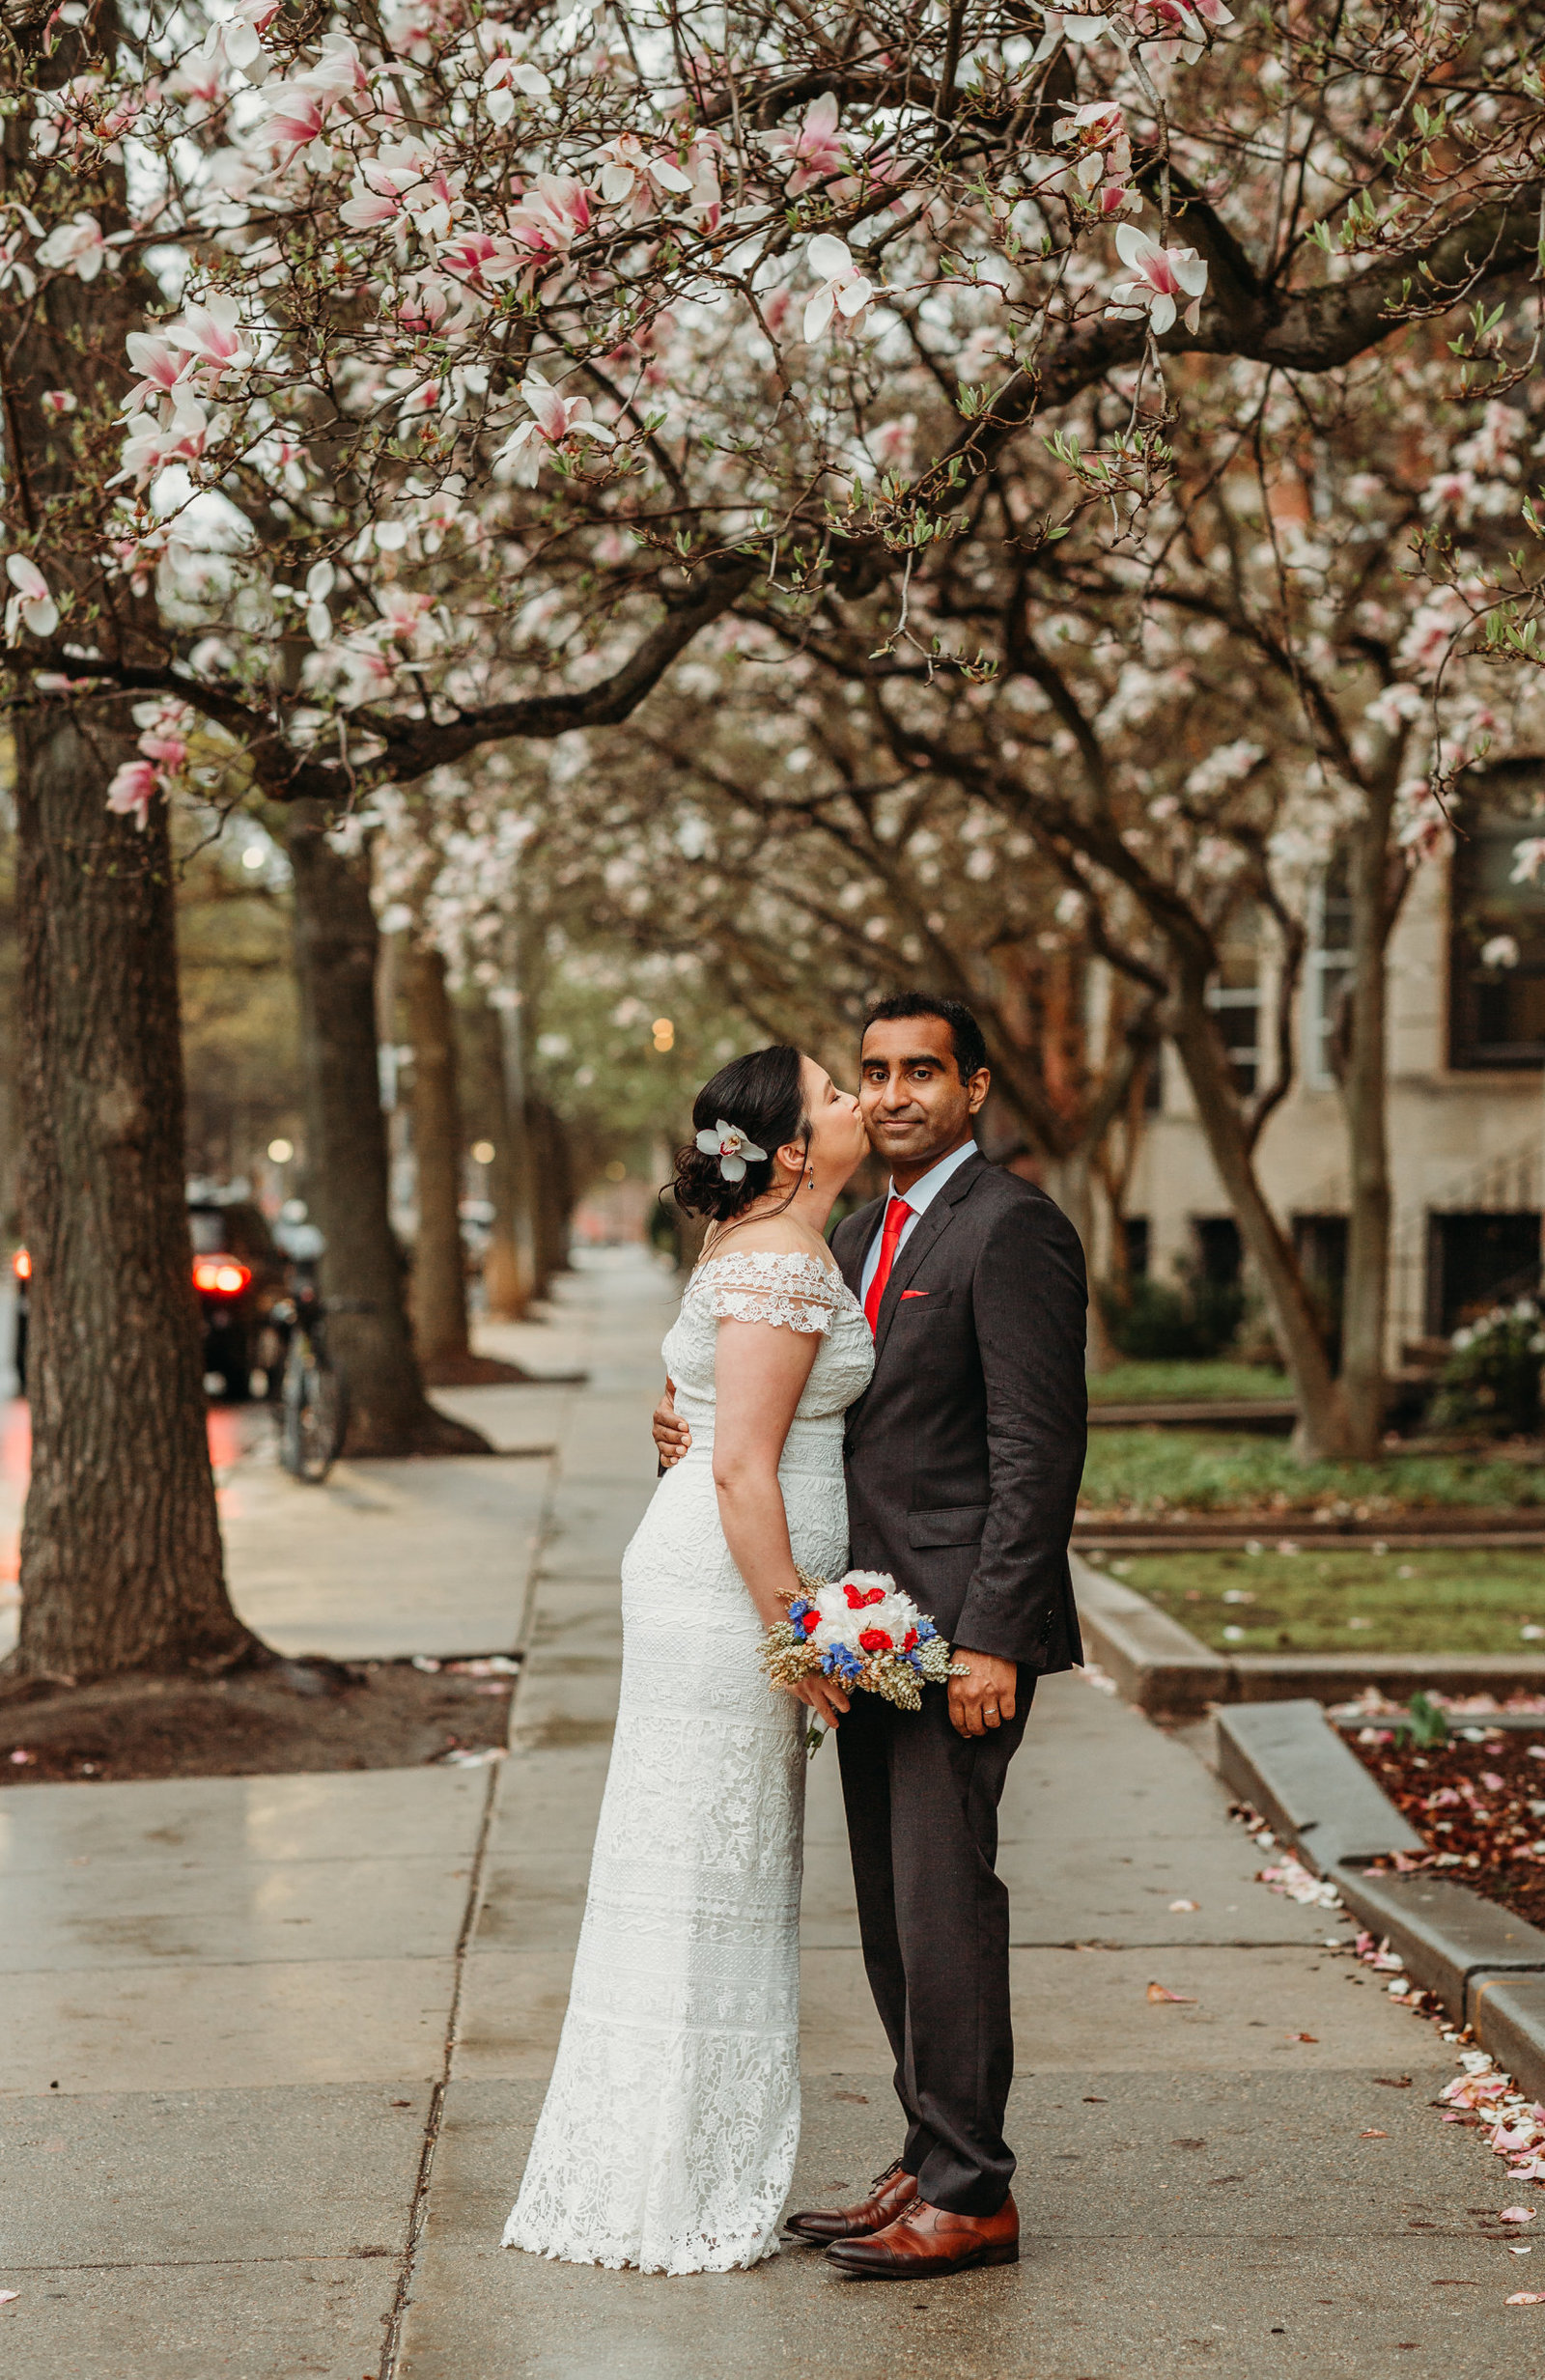 spring elopement under cherry blossoms